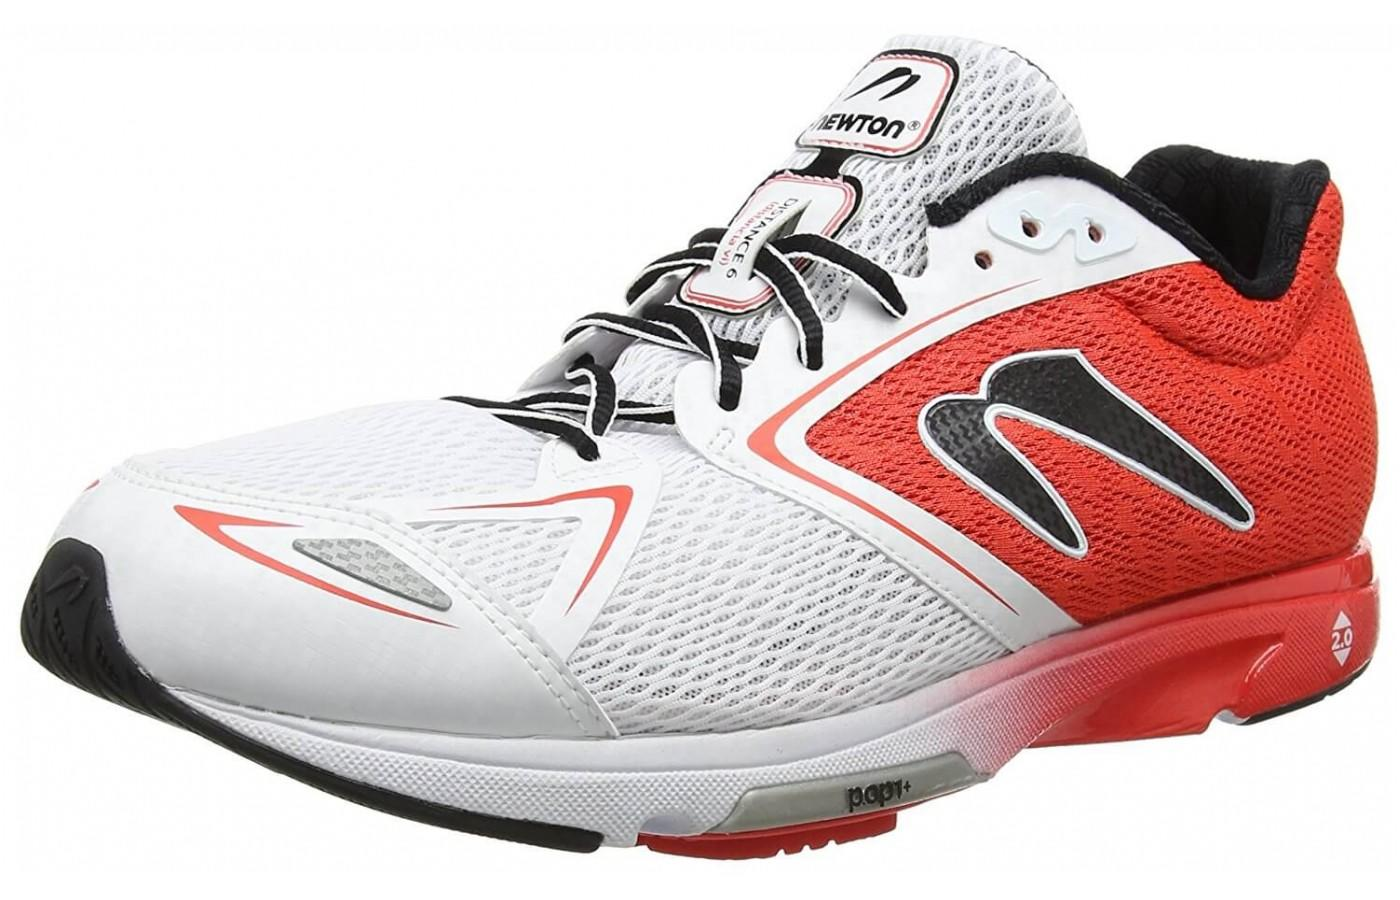 Newton Distance 6 Reviewed - To Buy or Not in Apr 2019  d8fec4250